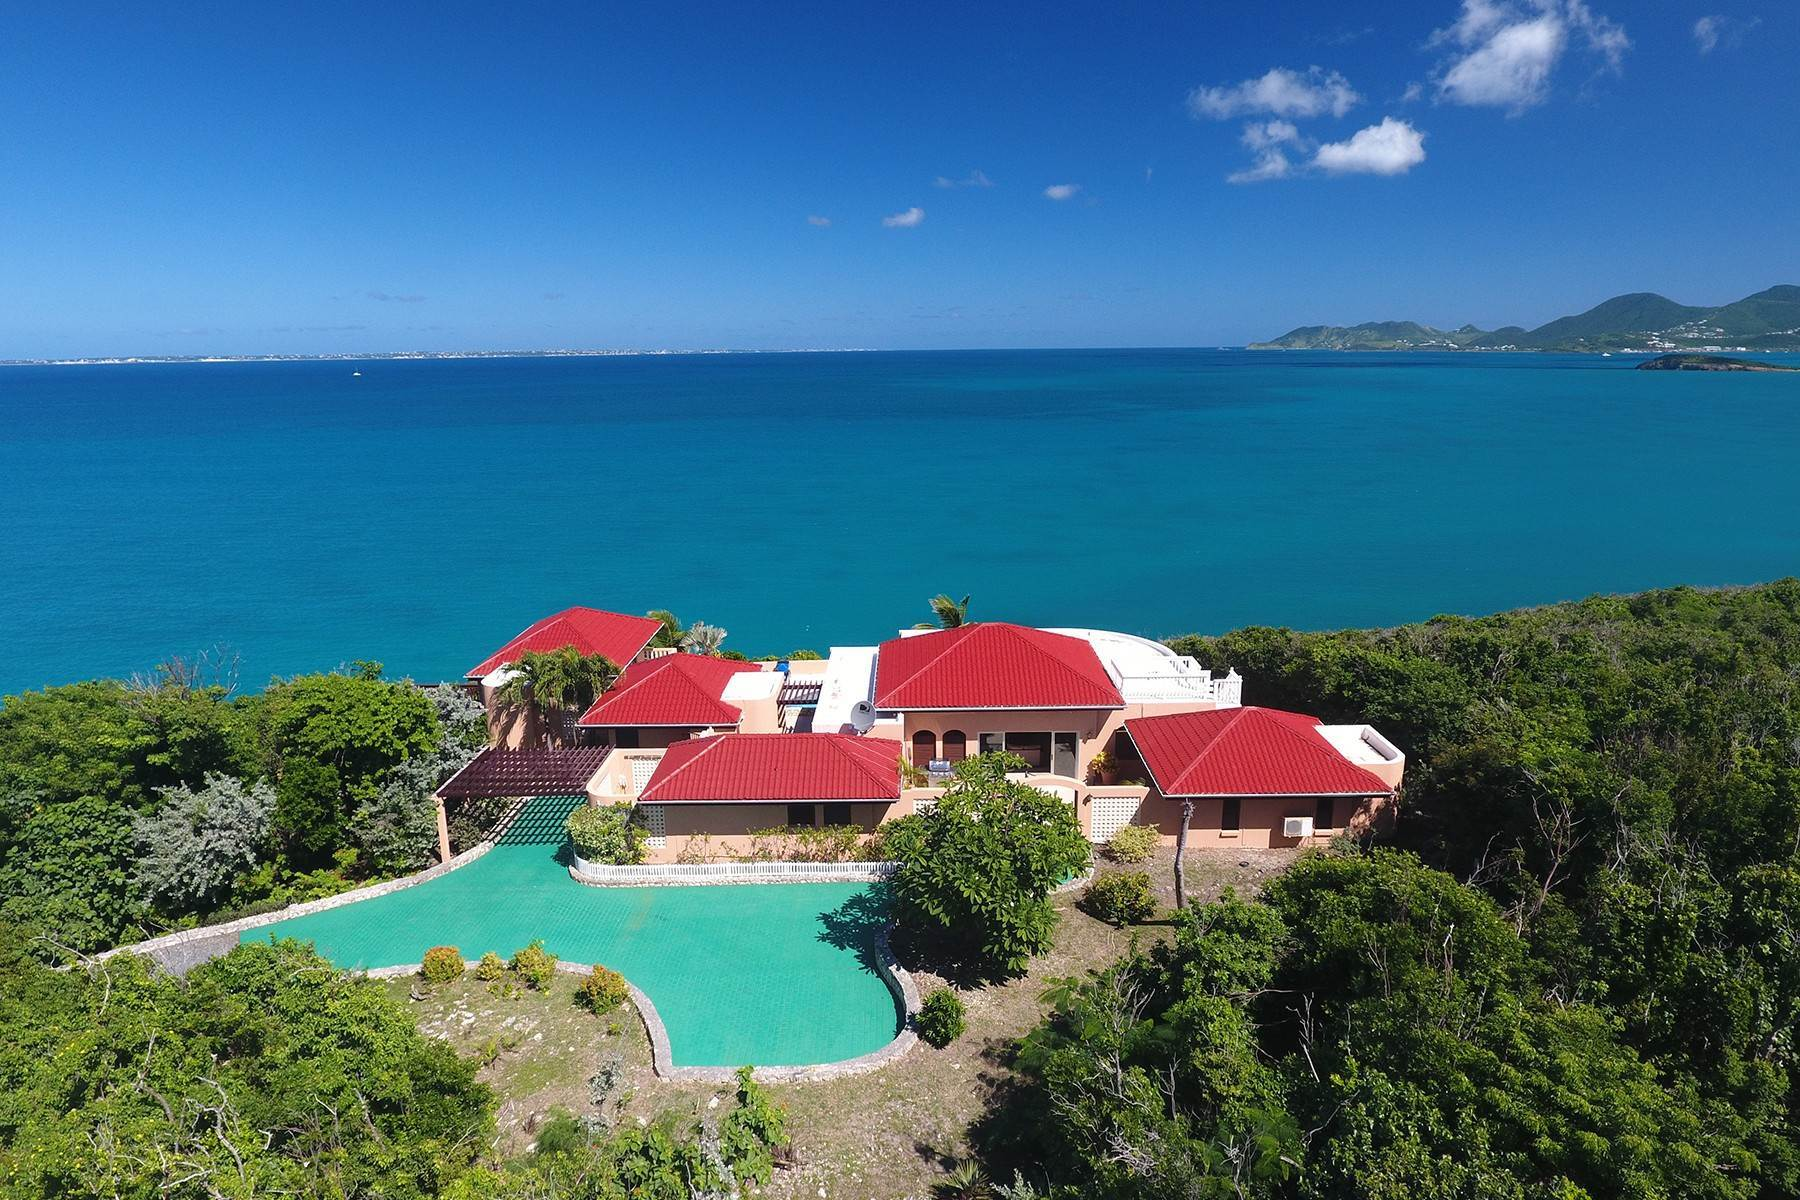 Single Family Homes for Sale at Mongoose Run Terres Basses, Cities In Saint Martin 97150 St. Martin